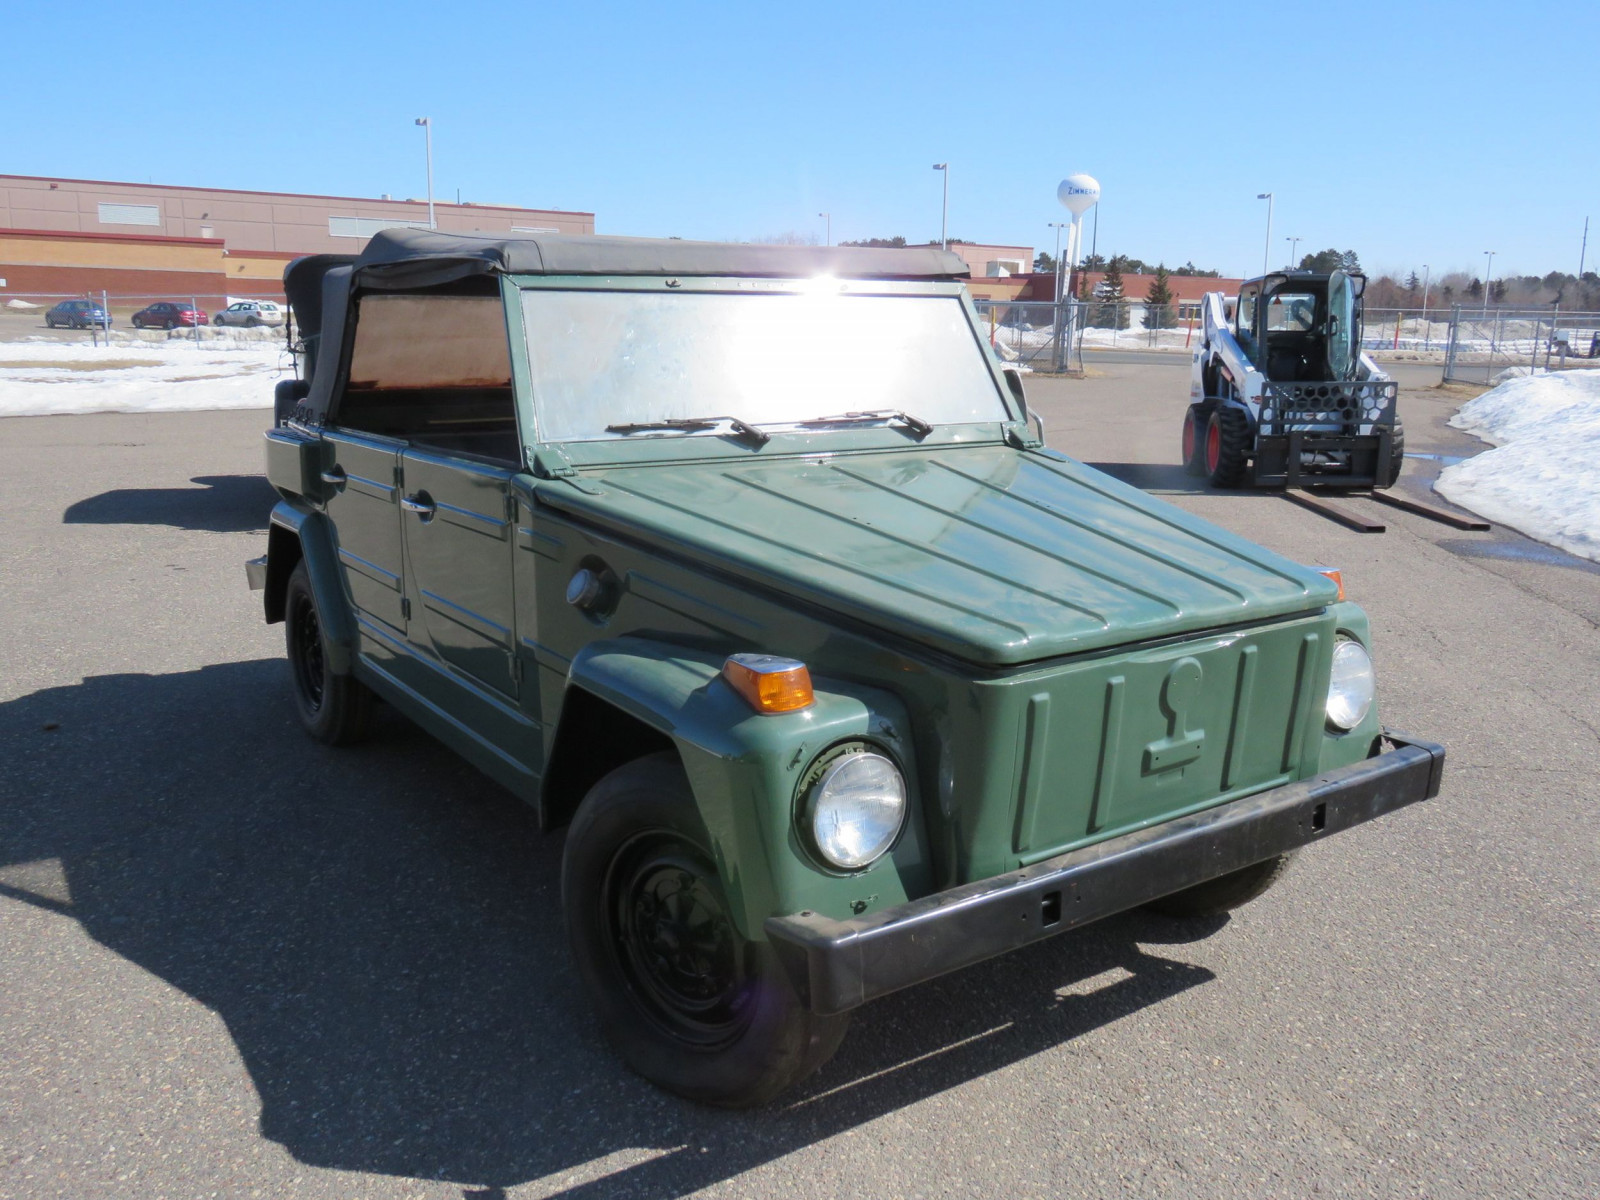 1974 Volkswagen Thing - Image 1